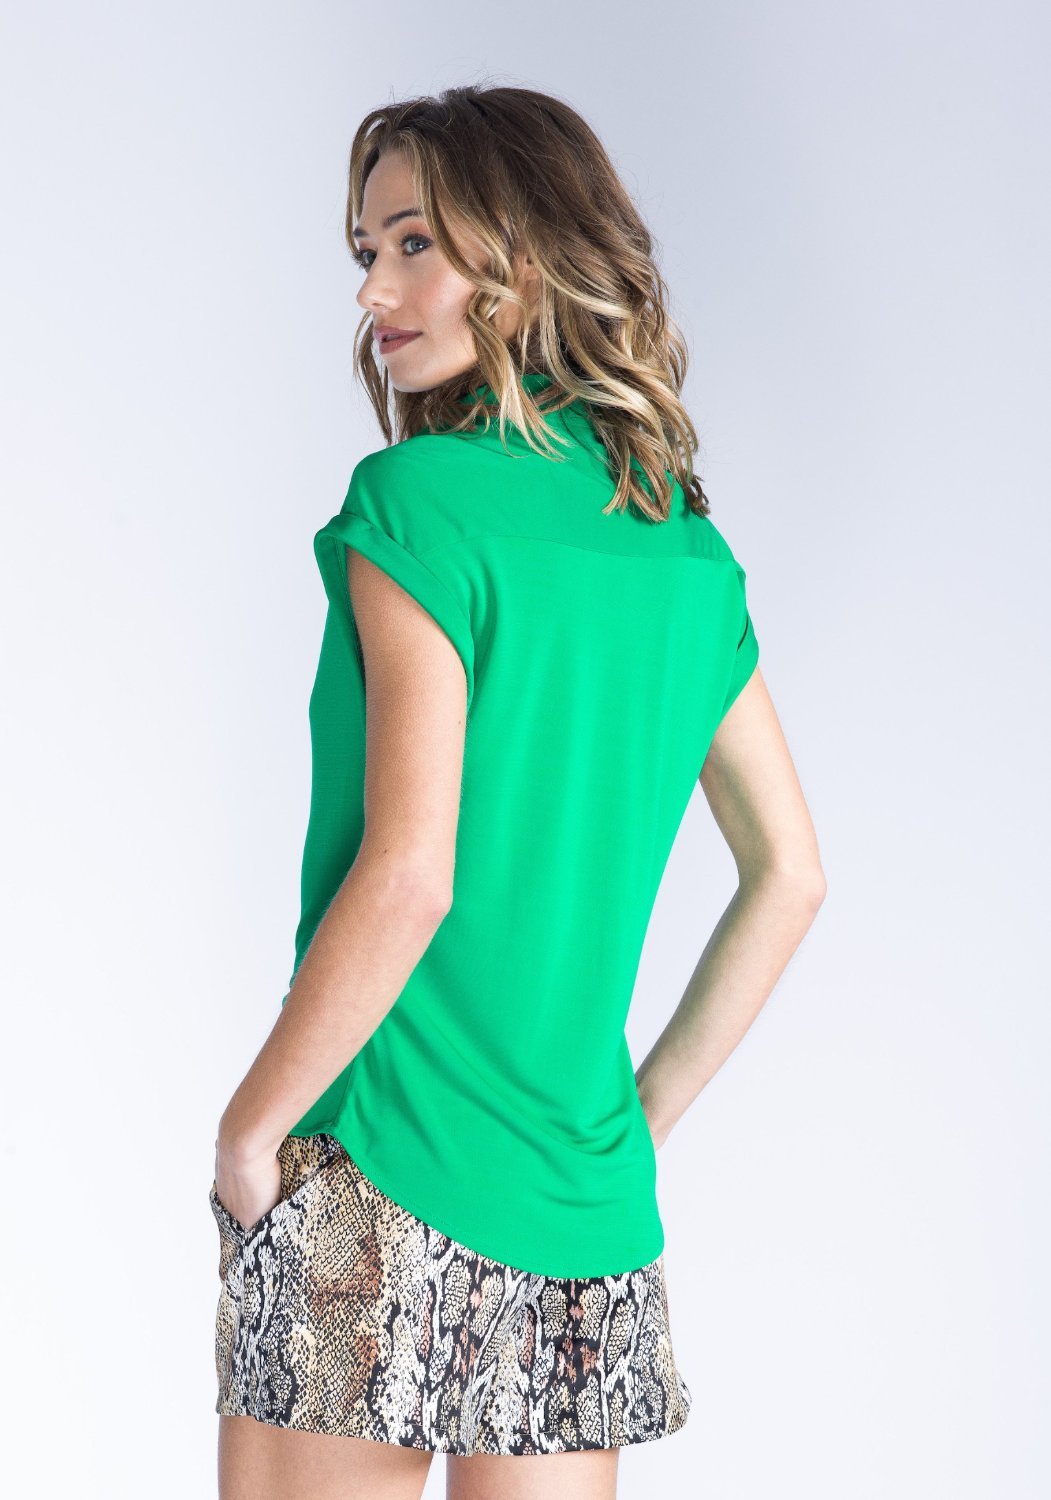 KIERA green button down top